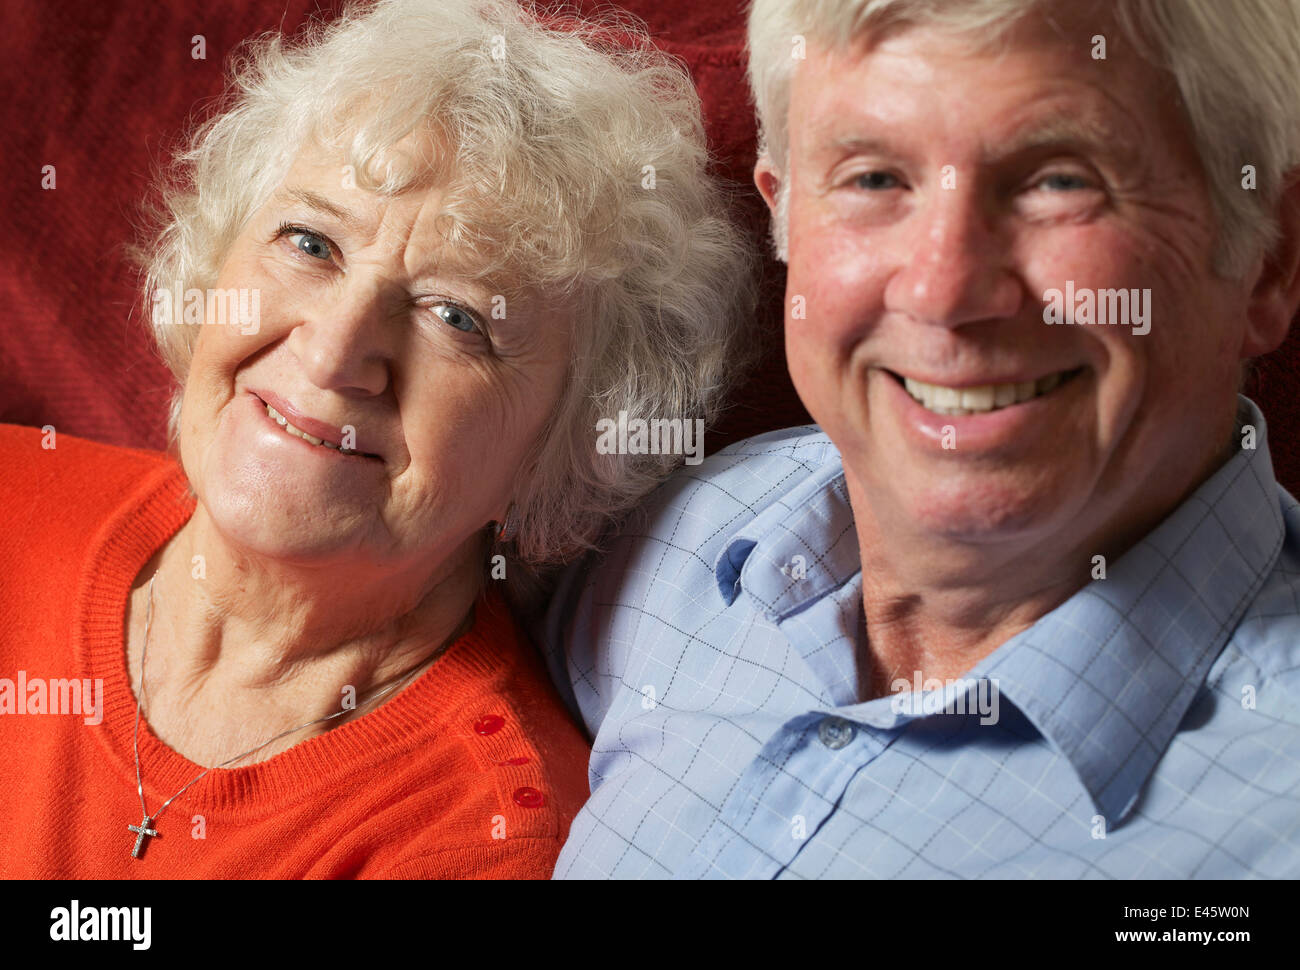 A senior couple relaxing indoors. - Stock Image